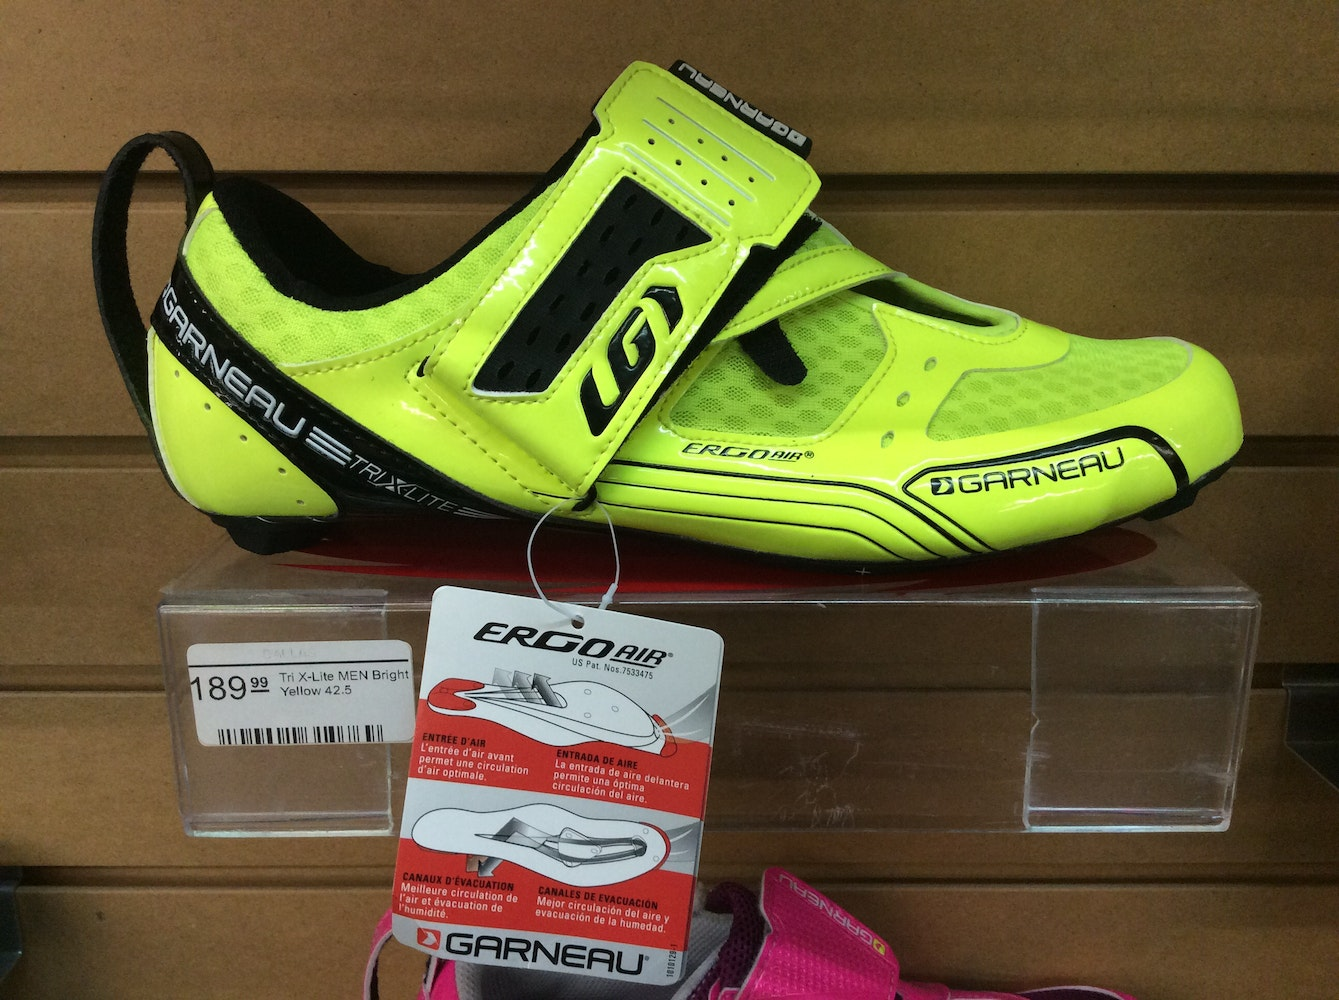 louis garneau tri x lite triathlon bike shoes for sale in dallas. Black Bedroom Furniture Sets. Home Design Ideas